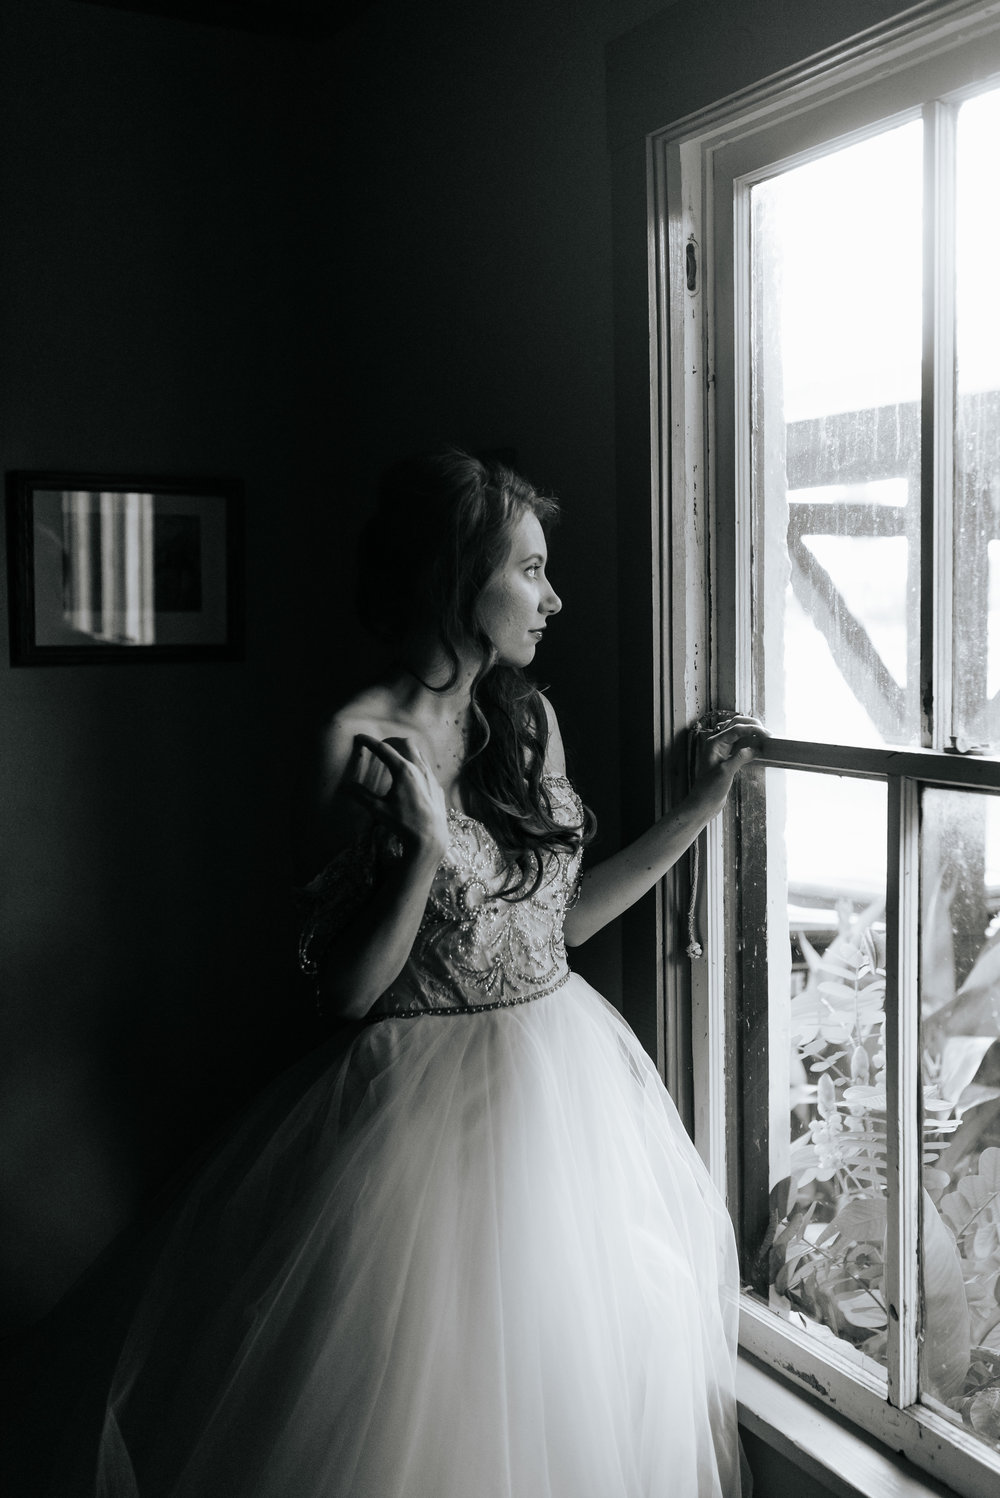 Grant-Station-Styled-Shoot-Whimsical-Moody-Fairytale-Wedding-Photography-by-V-9675.jpg